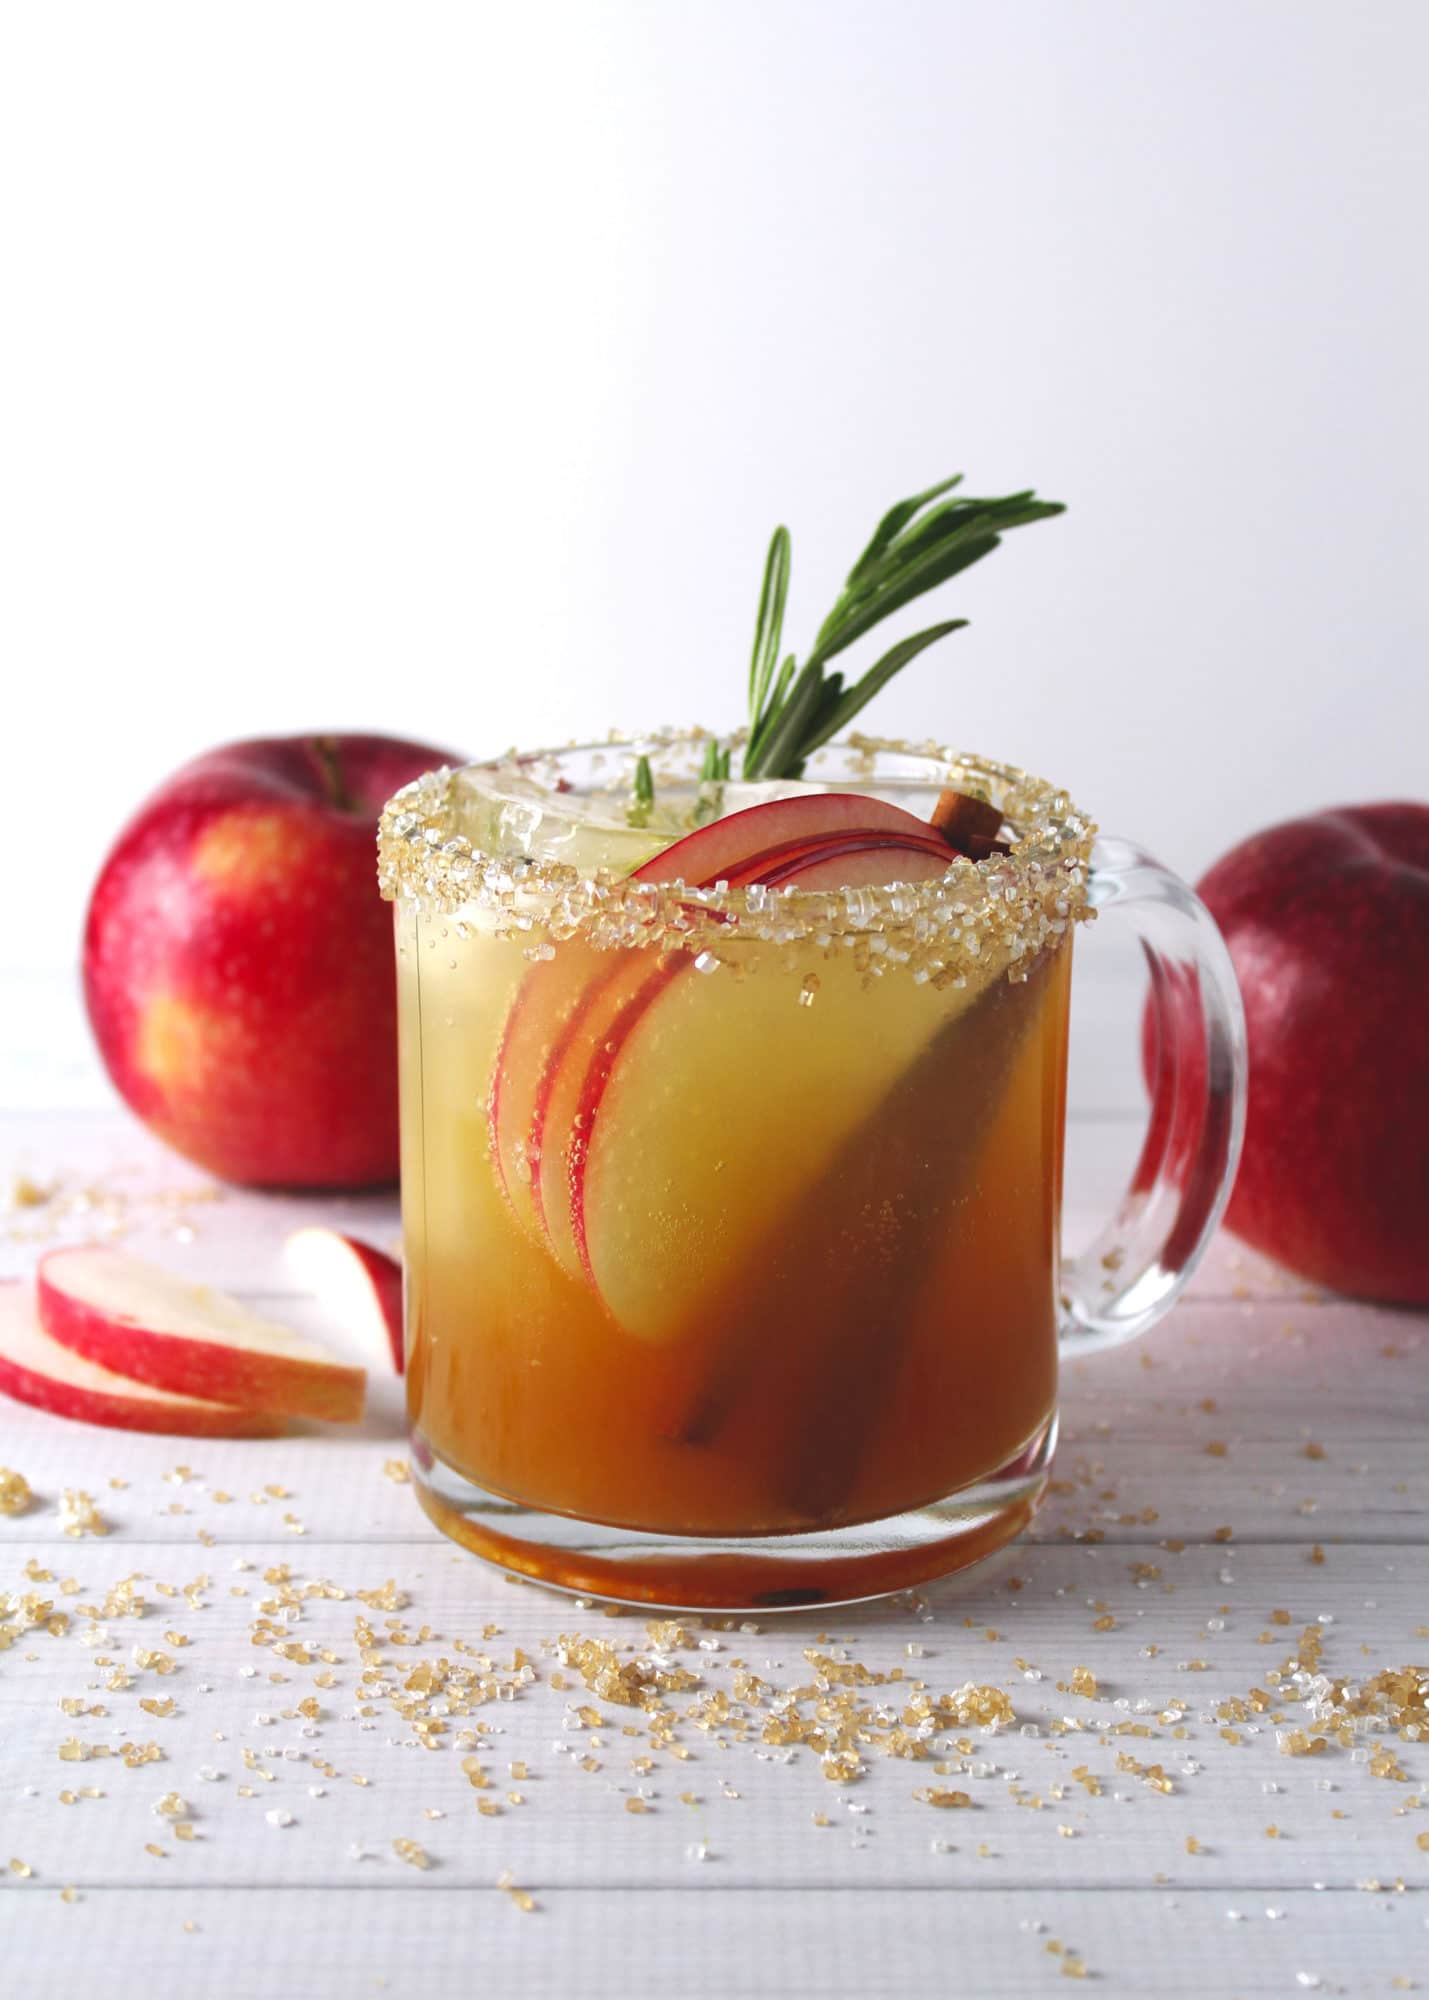 Add crispness to your fall and mix up an Apple Cider Maple Fizz cocktail. A little fizz, a lotta apple flavor, with a hint of cinnamon all in one cocktail | via @AimeeMarsLiving | #AppleCider #Cocktail #Maple